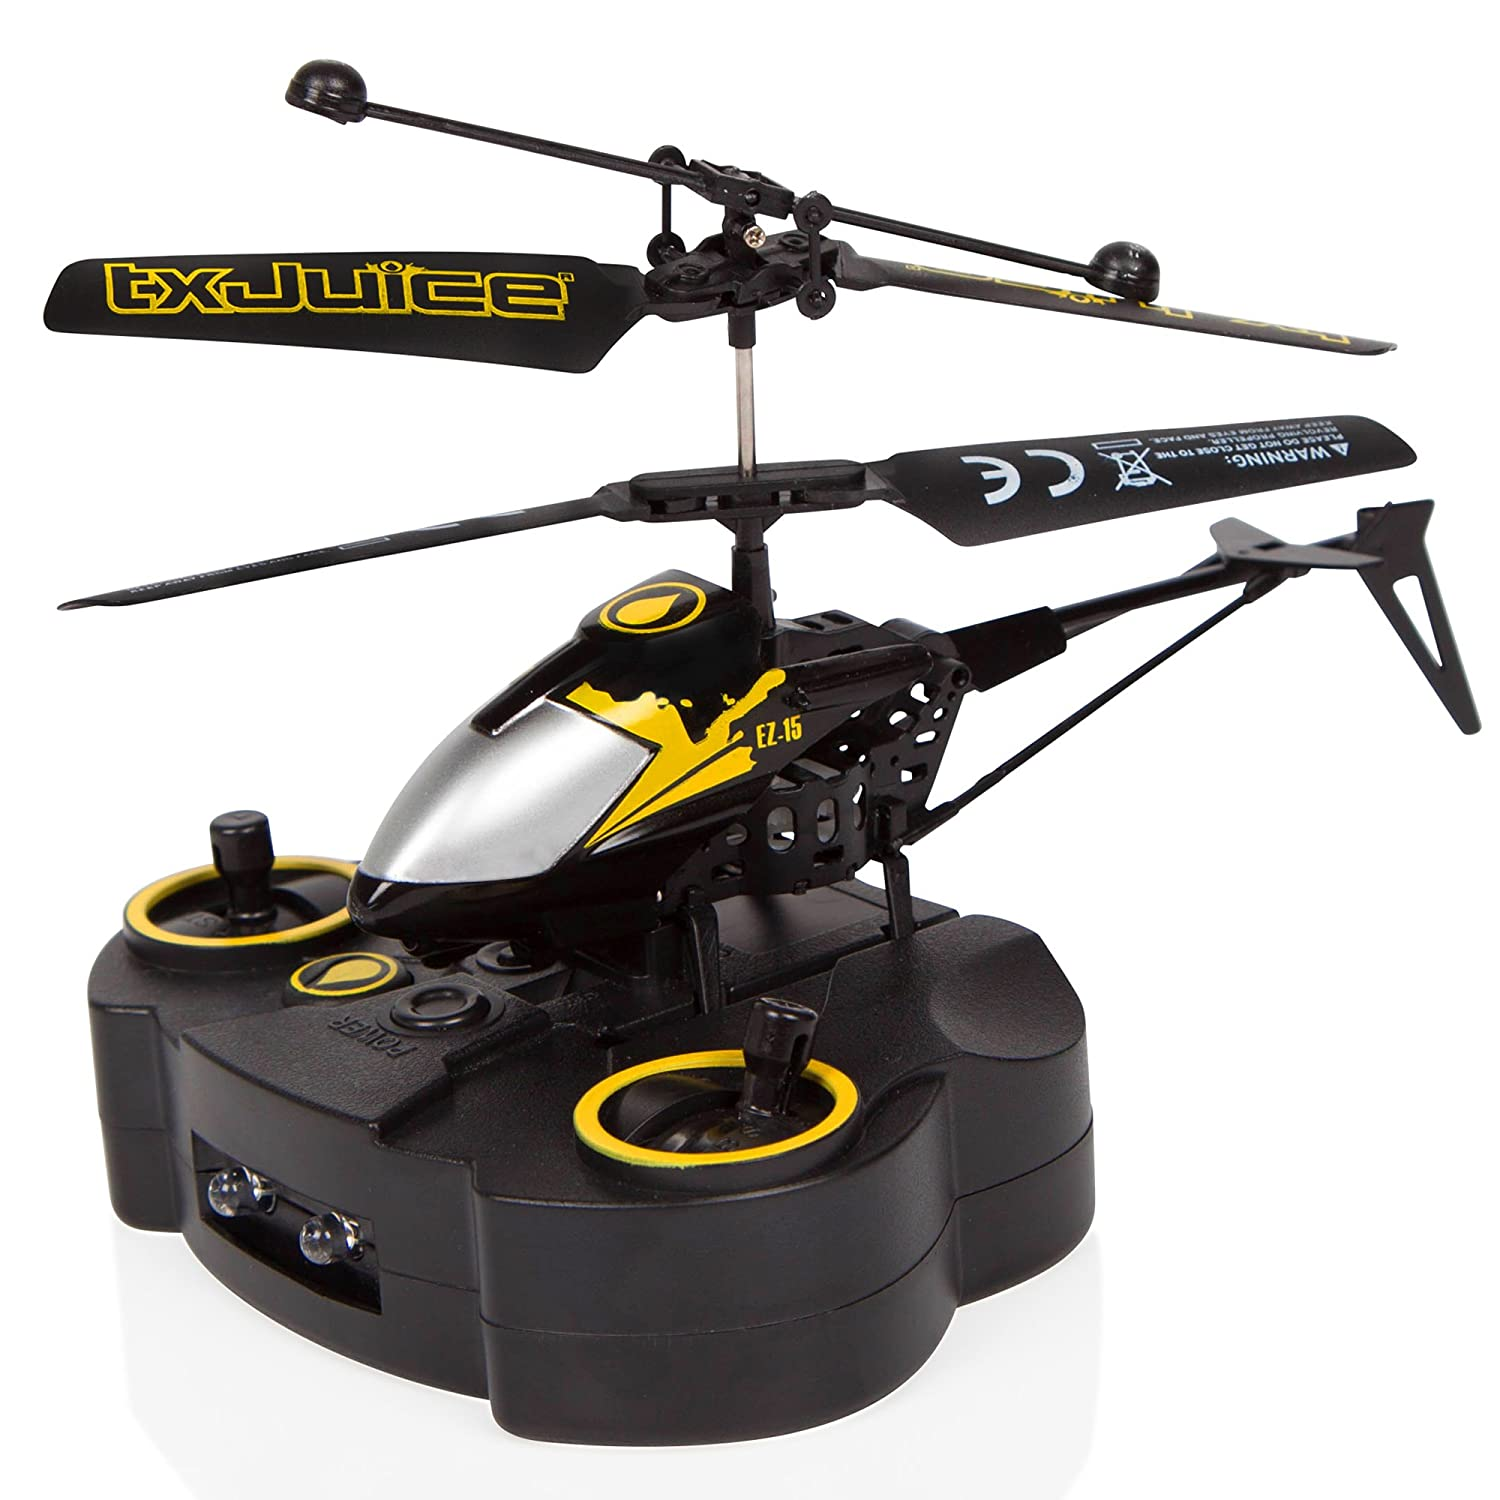 TX Juice EAZI Copter World s First R C Helicopter with Altitude